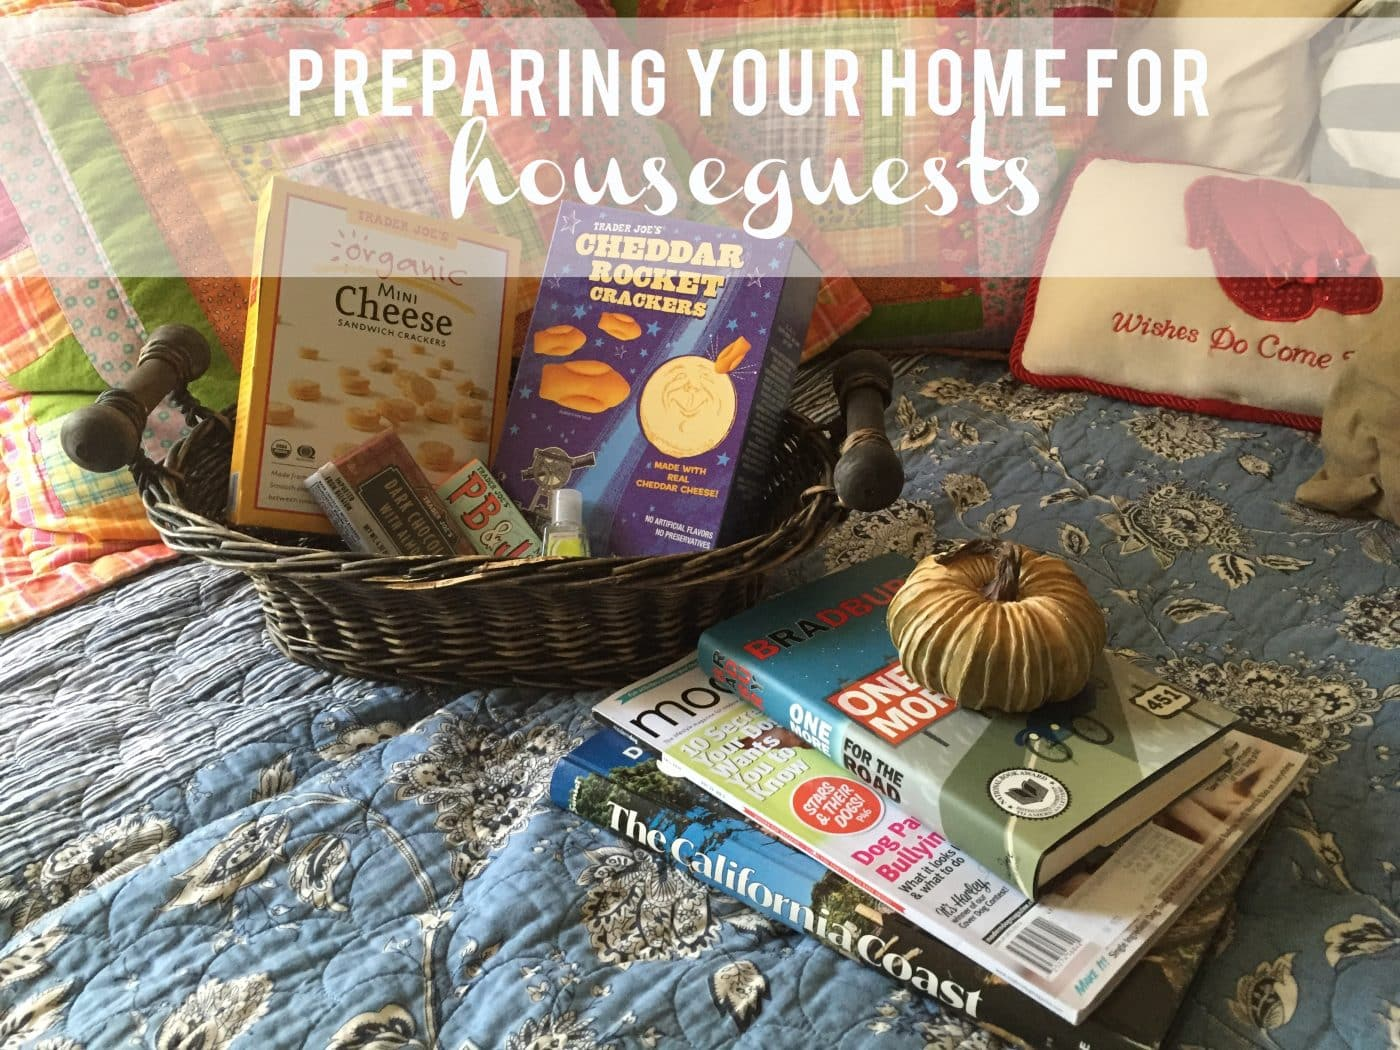 How to Prepare Your Home for House Guests